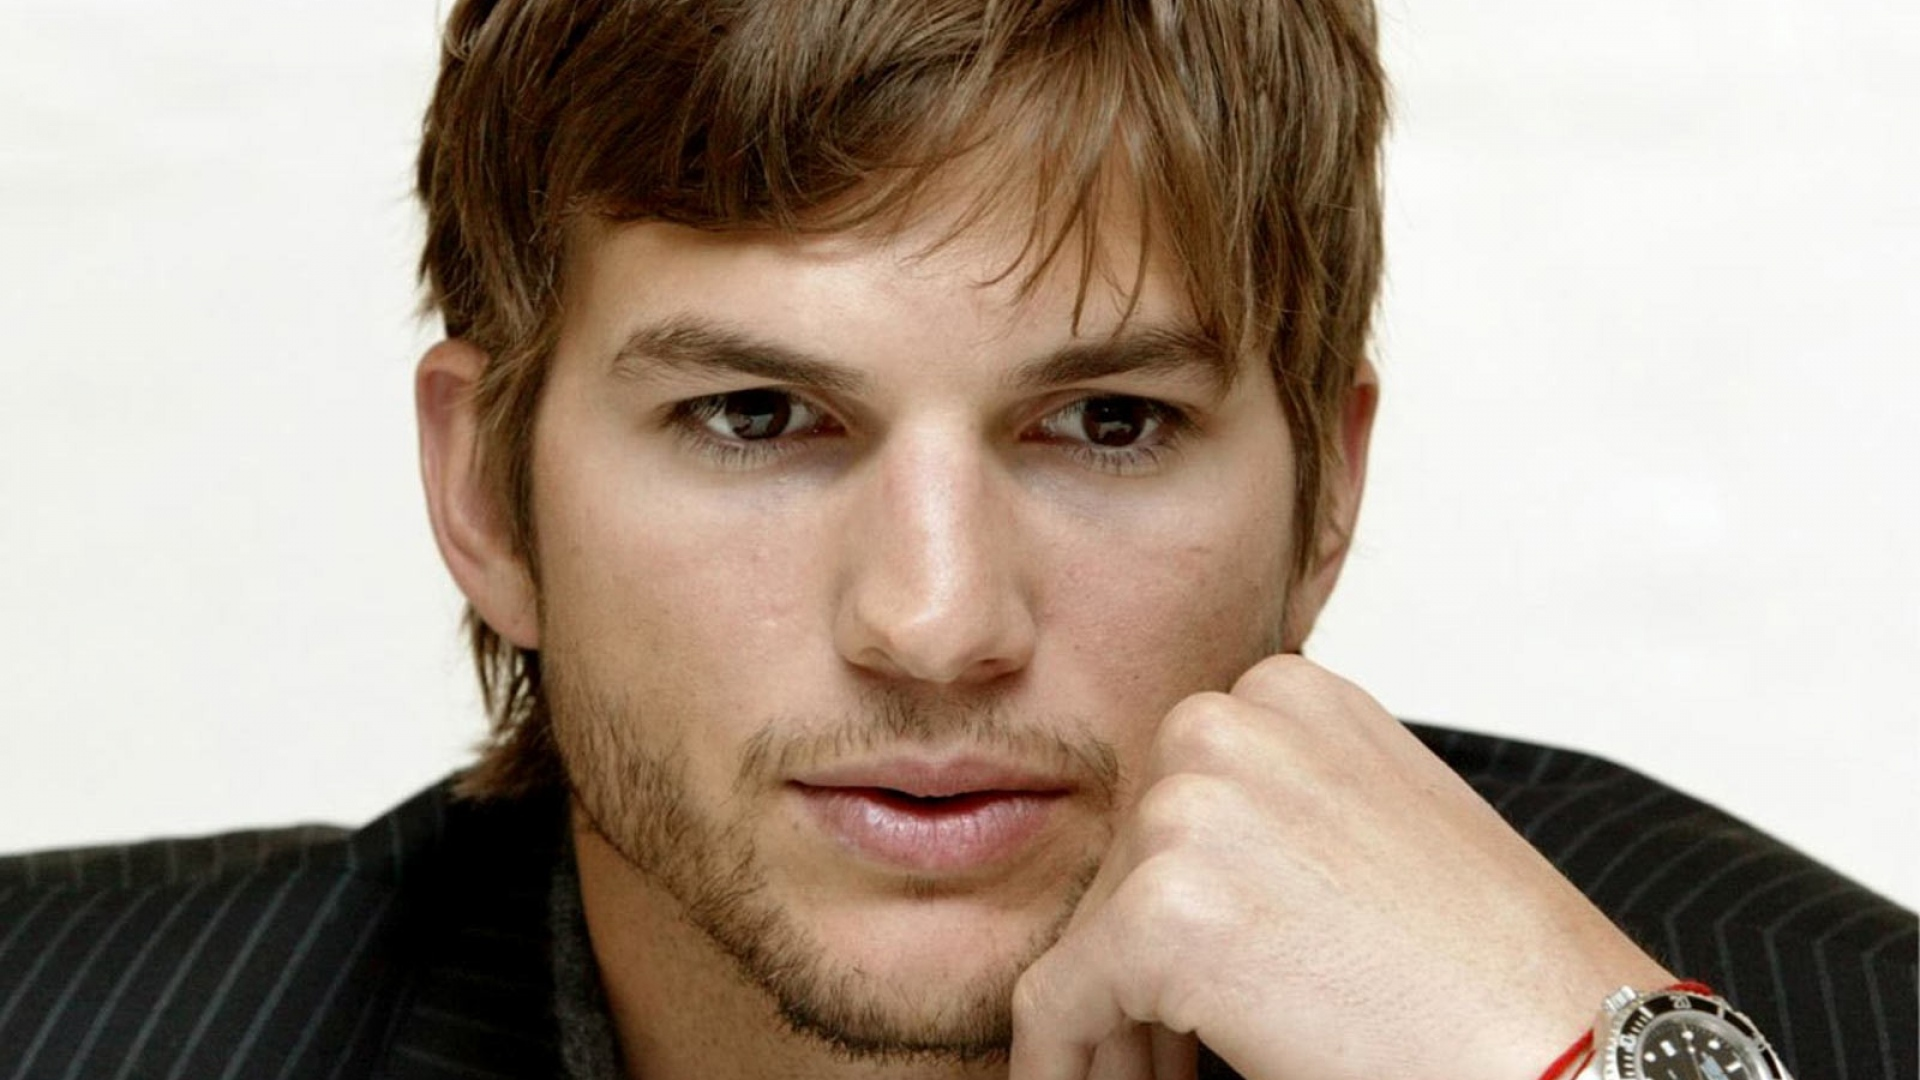 Download Wallpaper 1920x1080 ashton kutcher, dark-haired ...